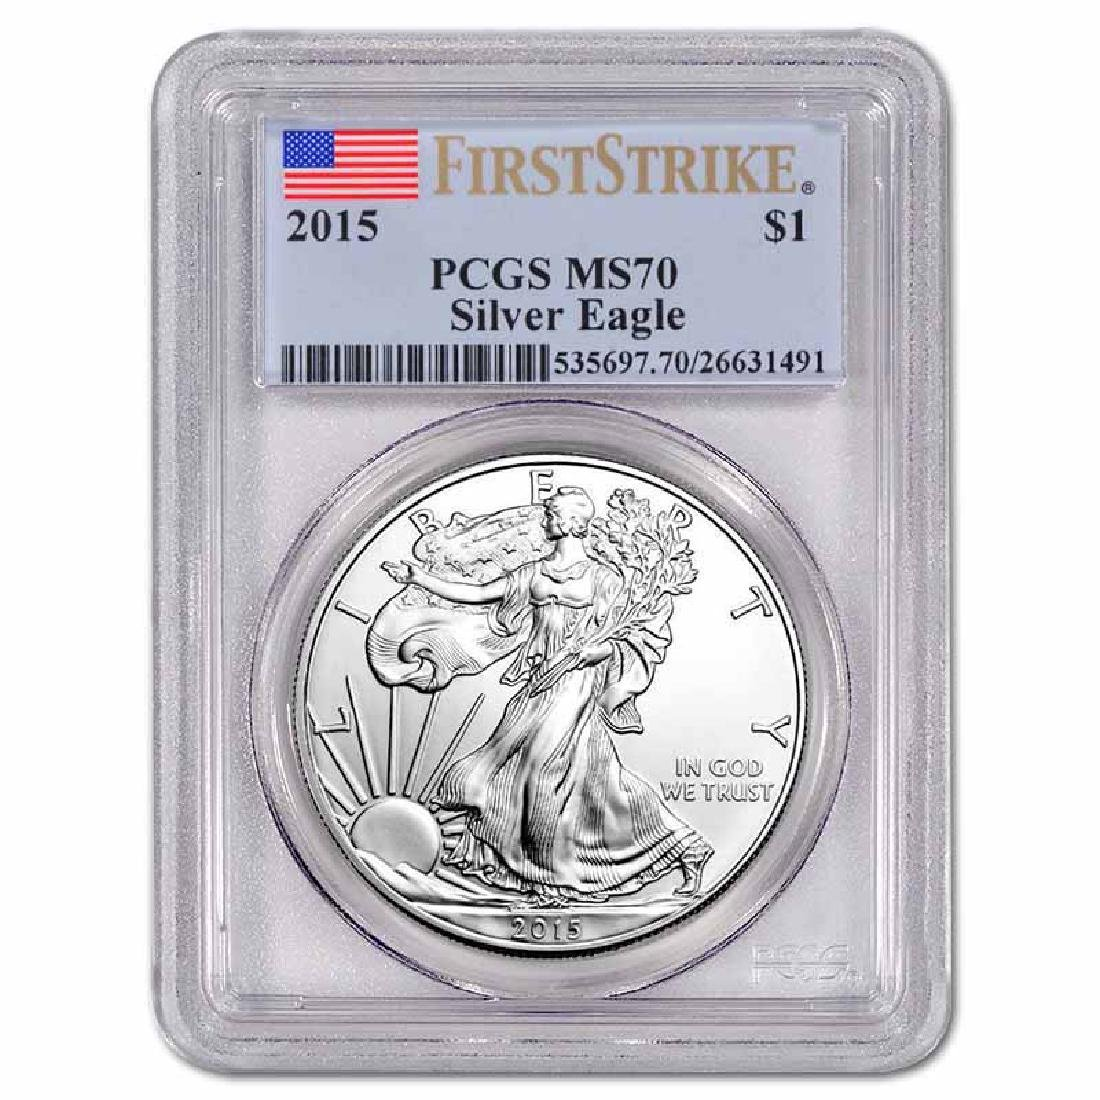 Certified Uncirculated Silver Eagle 2015 MS70 PCGS Firs